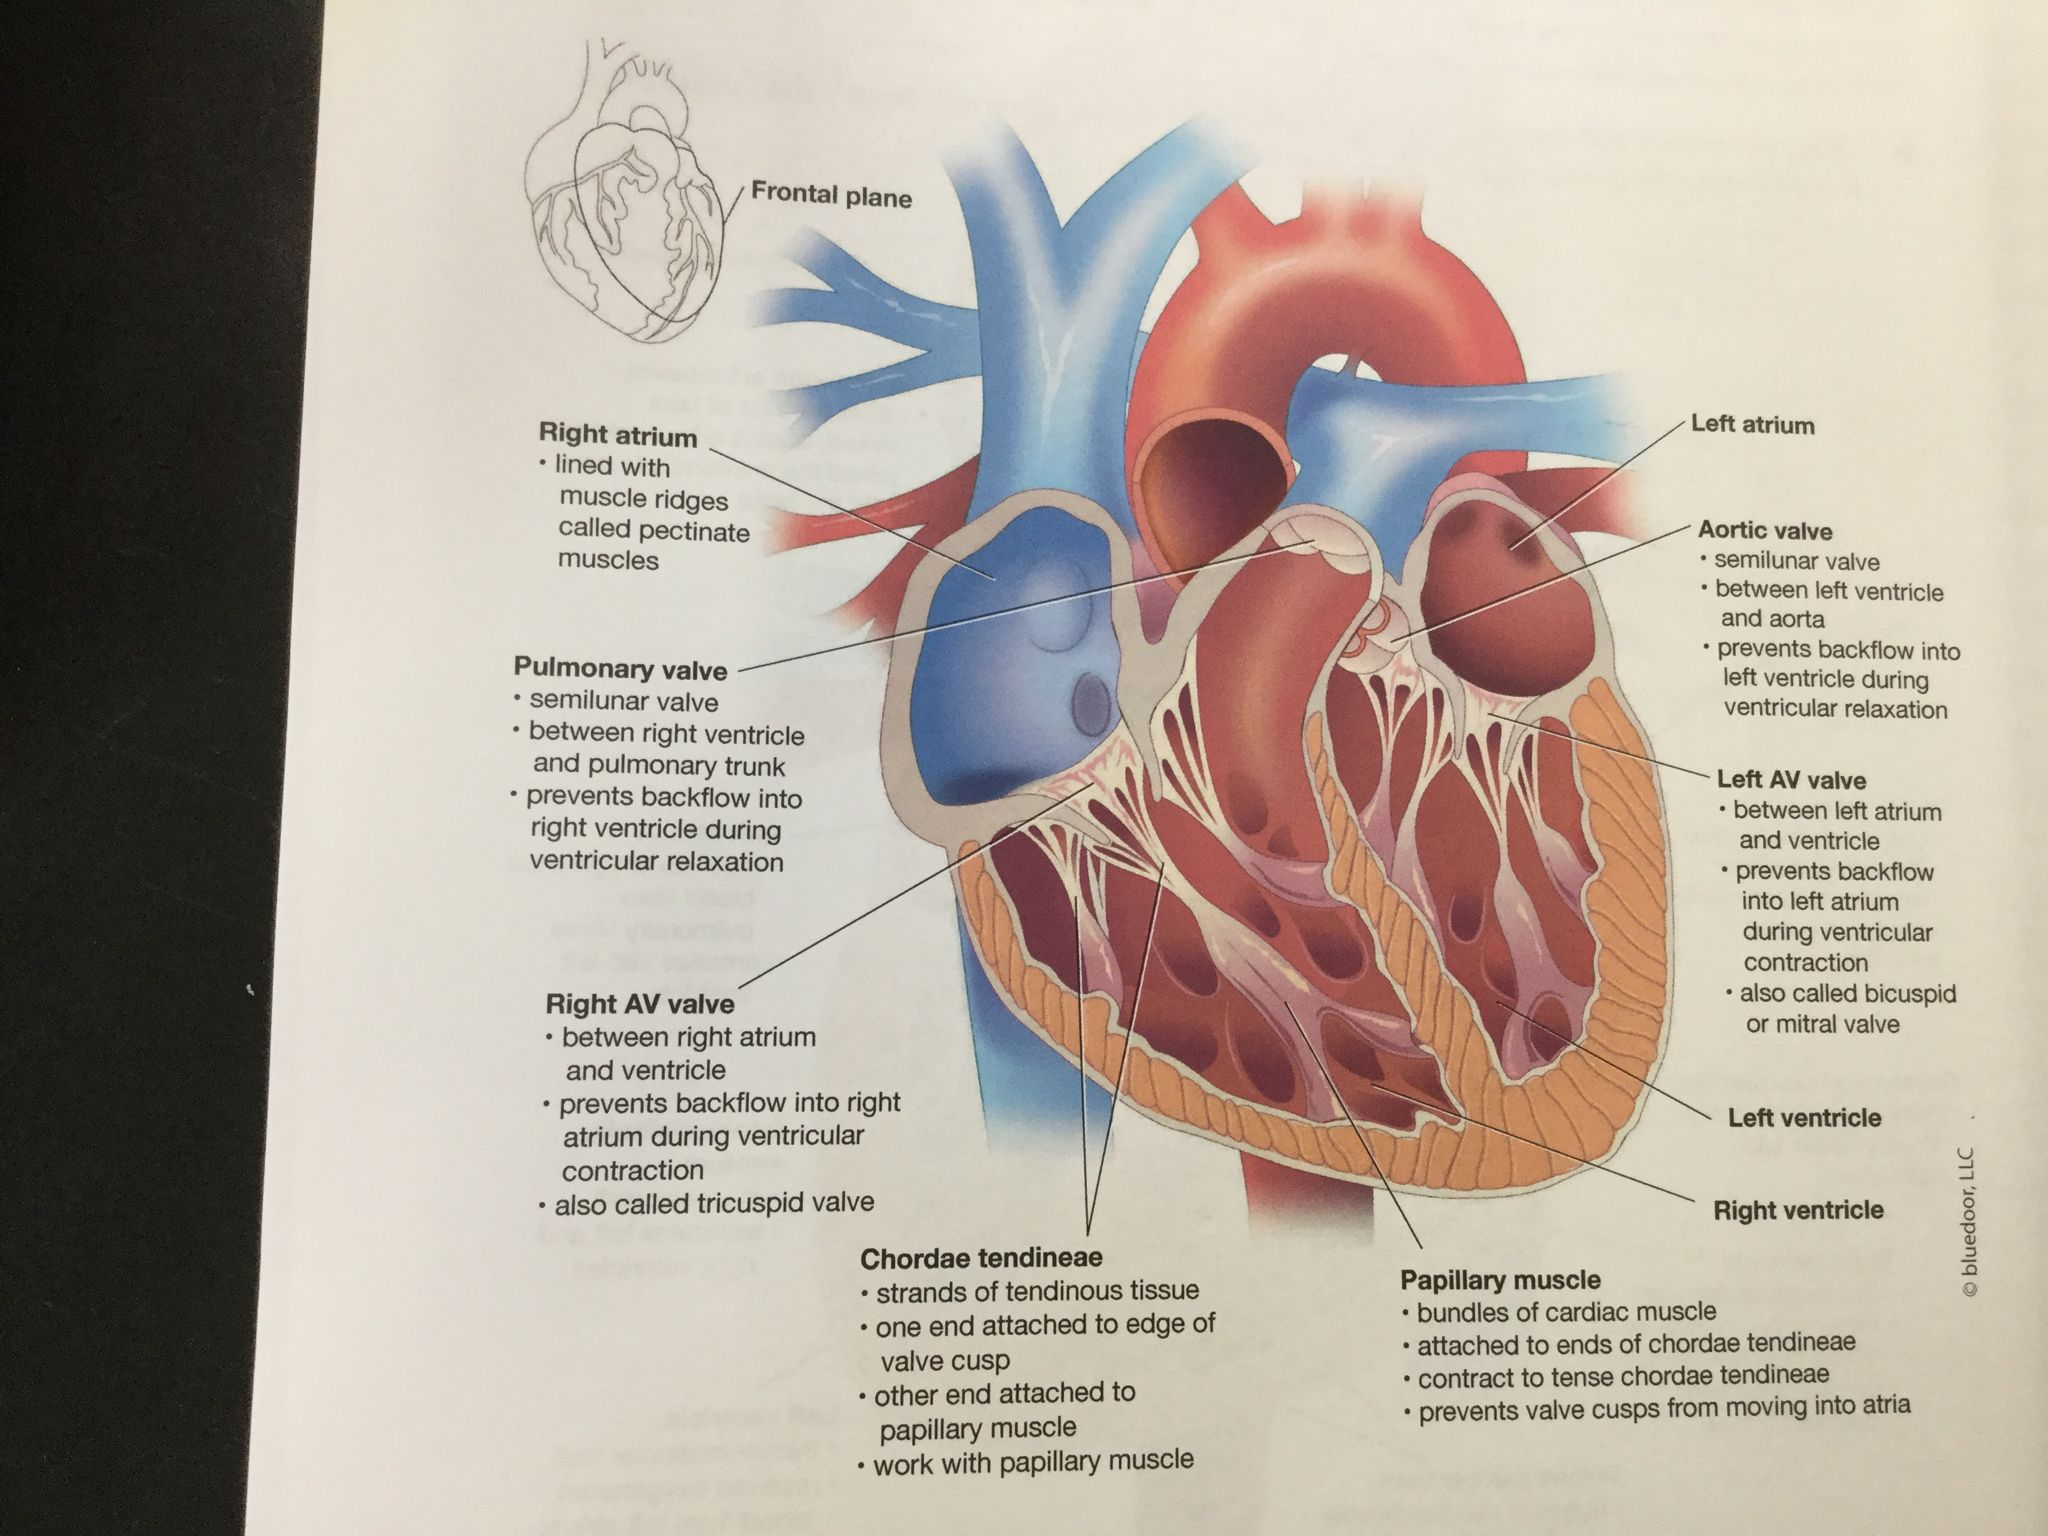 Heart Located In The Mediastinum Of The Thoracic Cavity